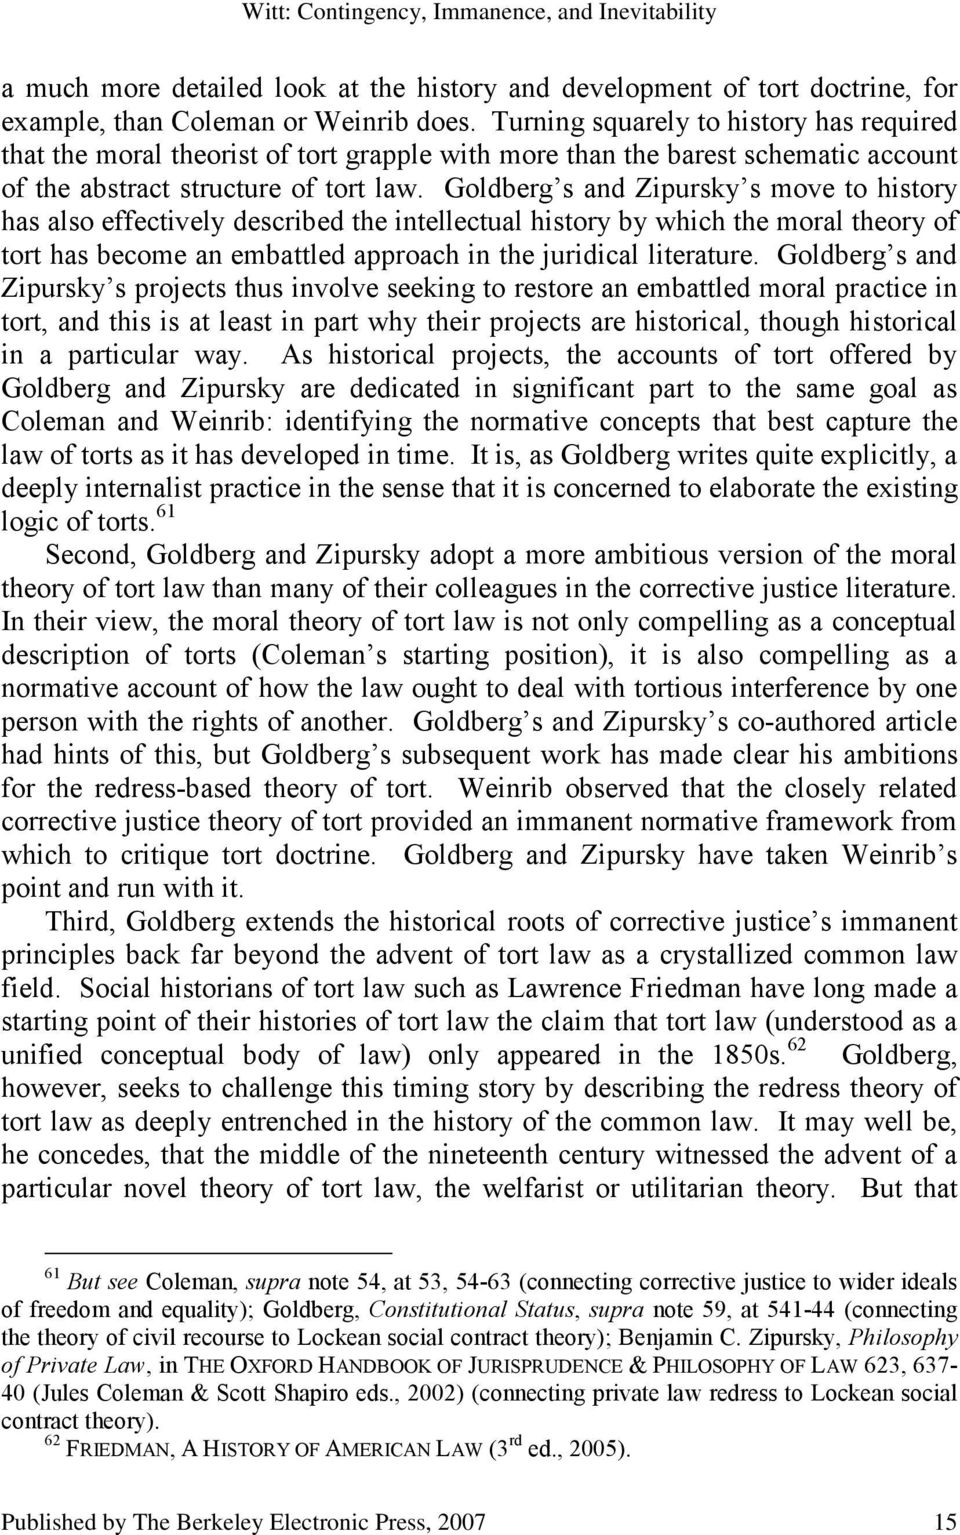 Goldberg s and Zipursky s move to history has also effectively described the intellectual history by which the moral theory of tort has become an embattled approach in the juridical literature.